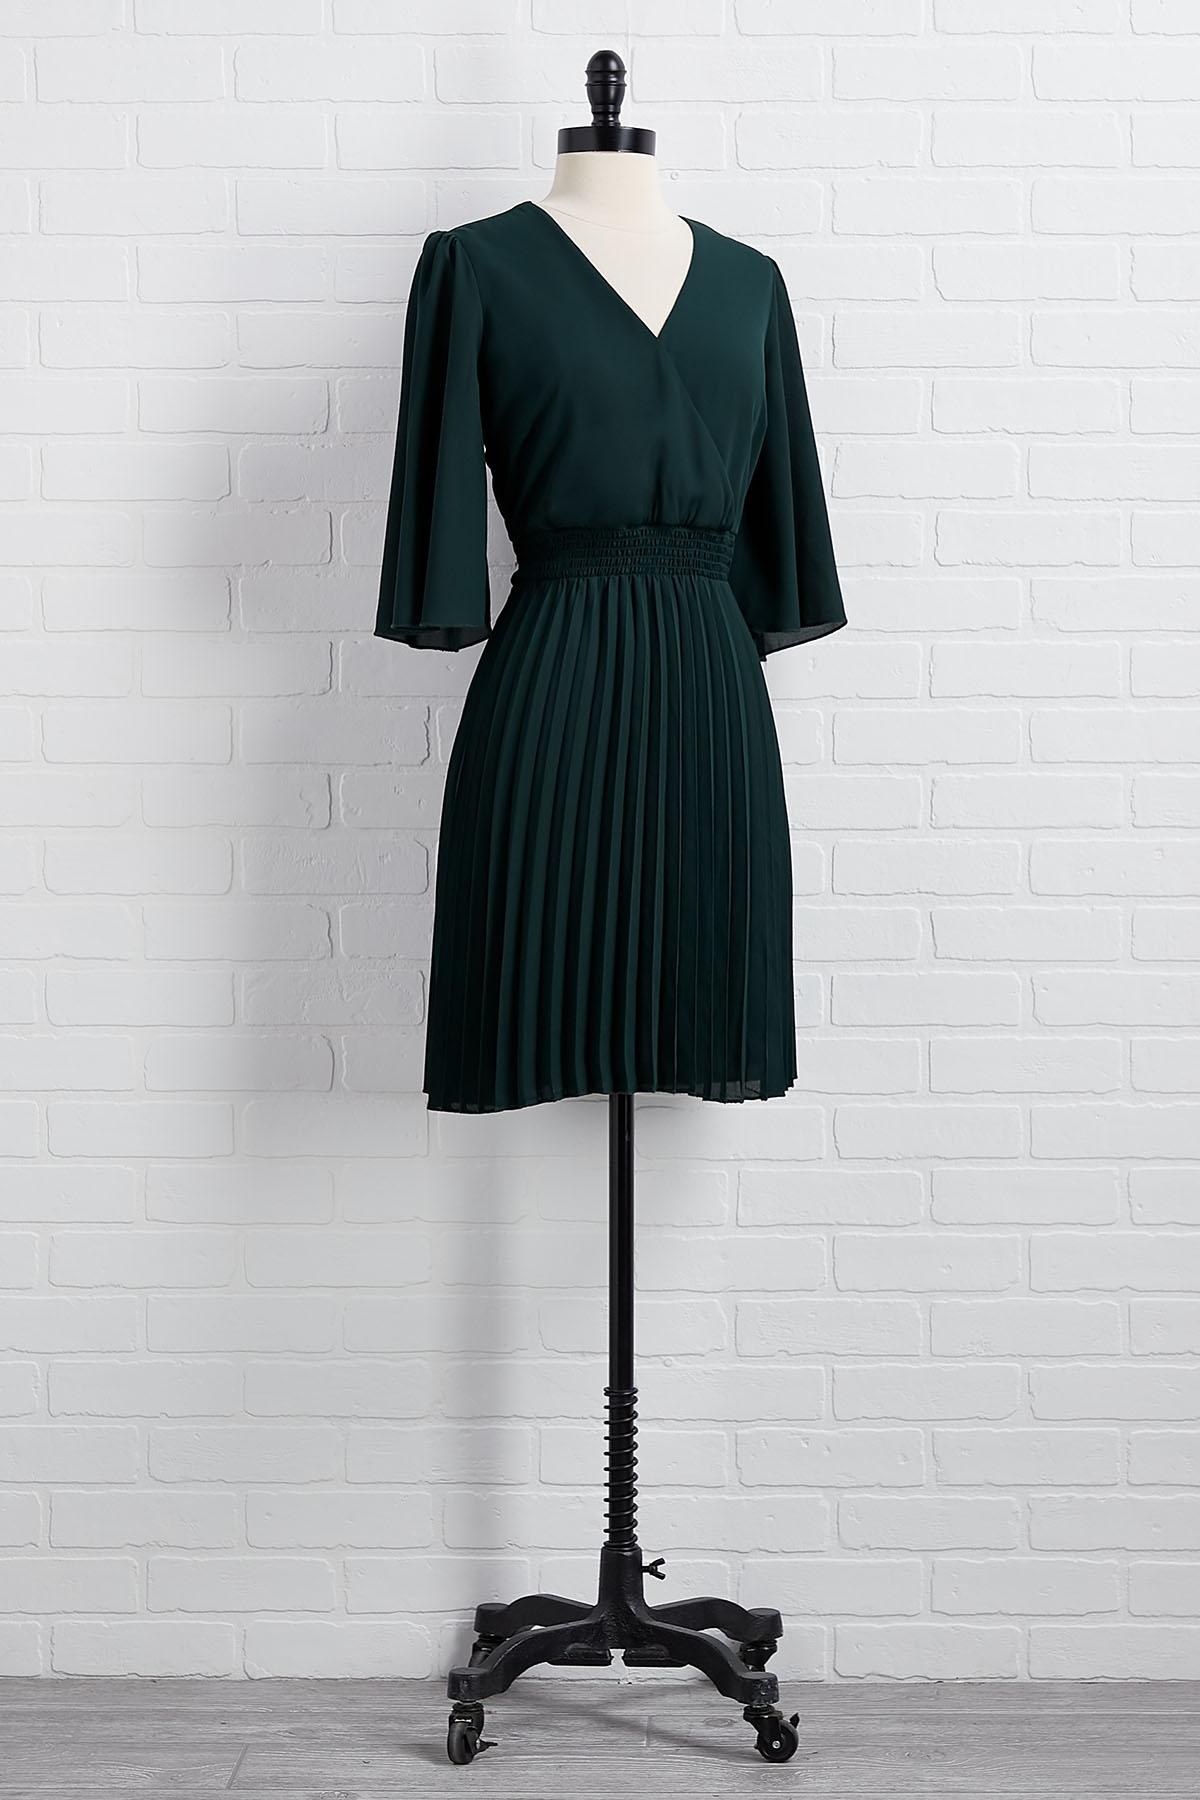 The Pleat Is On Dress